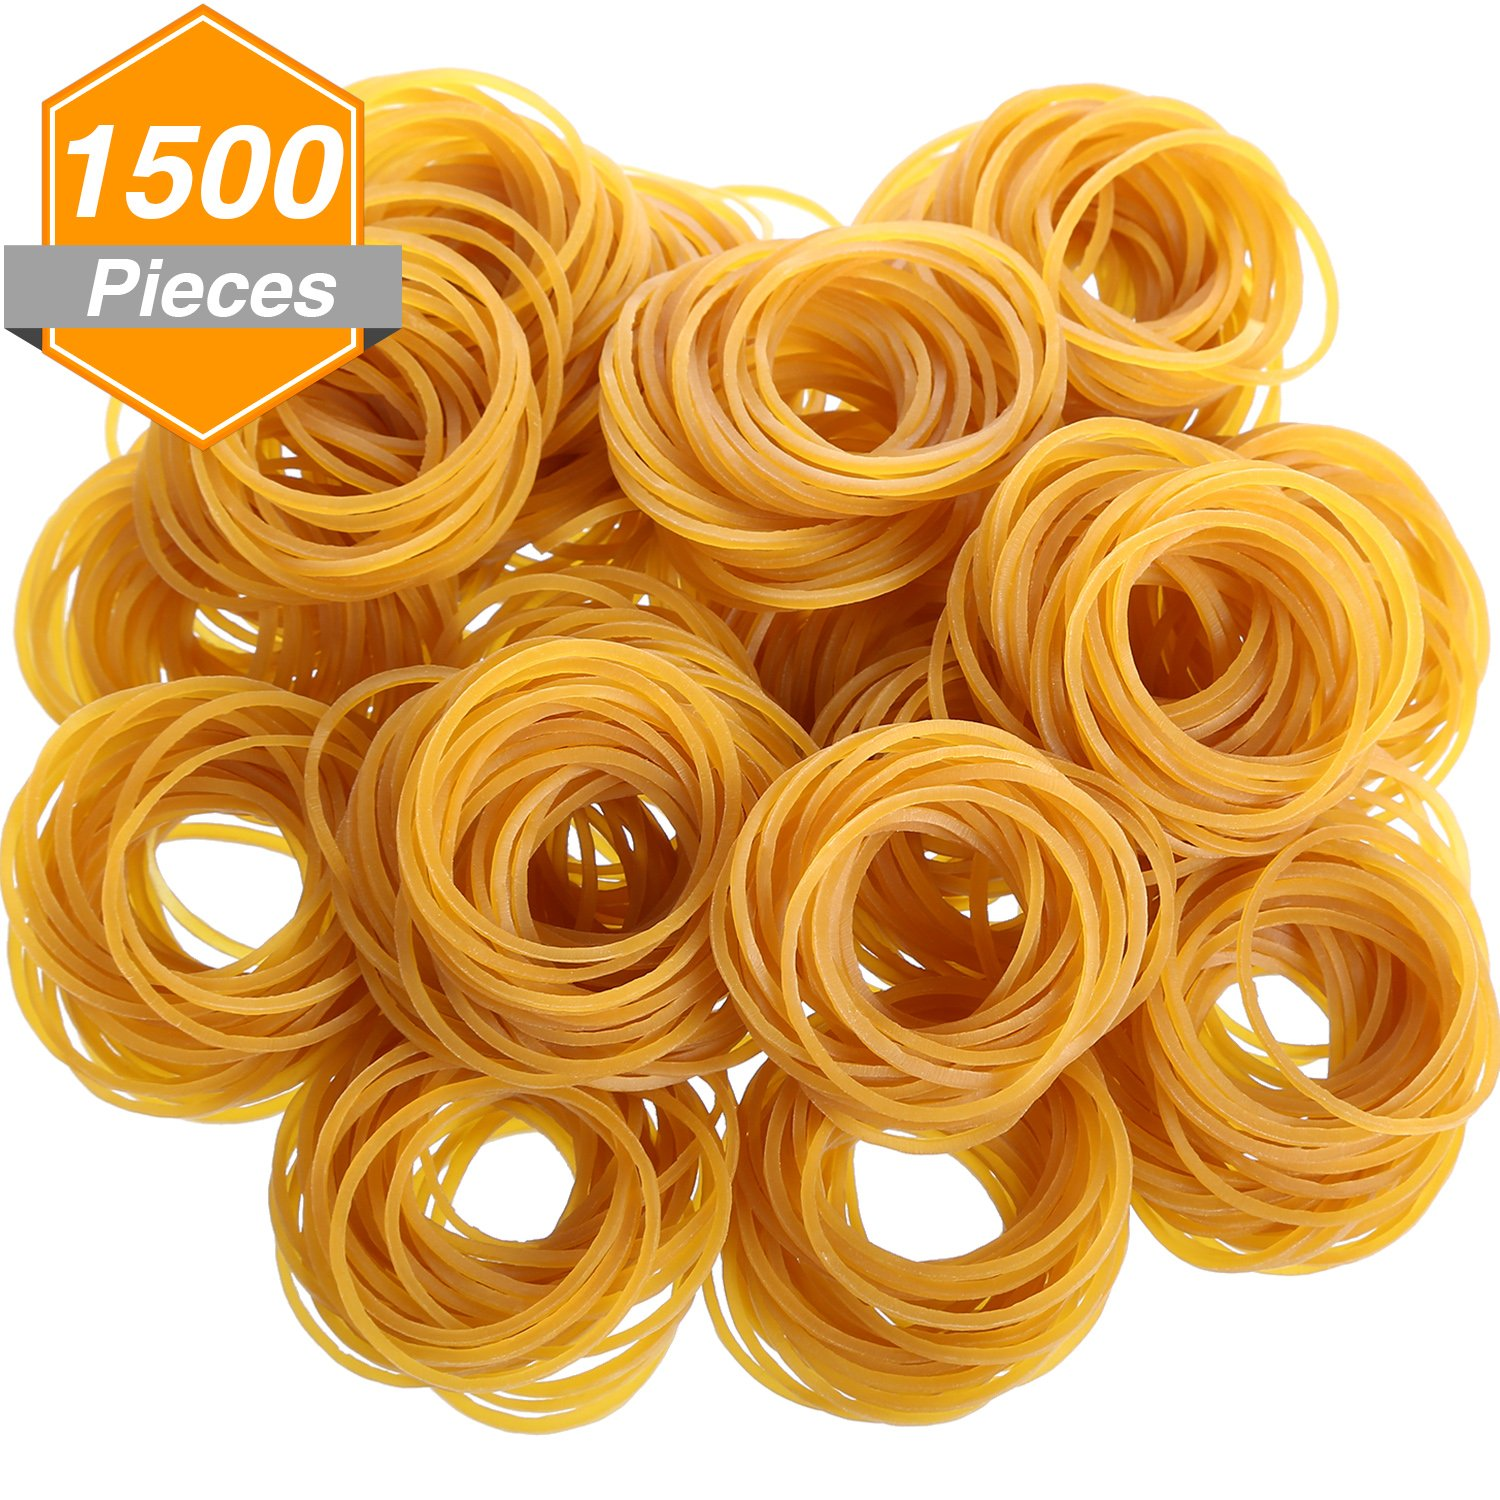 Gejoy 1500 Pieces Rubber Bands Stretchable Rubber Loop Bands for School Office Home Use, 50 mm by 1.5 mm, Dark Yellow